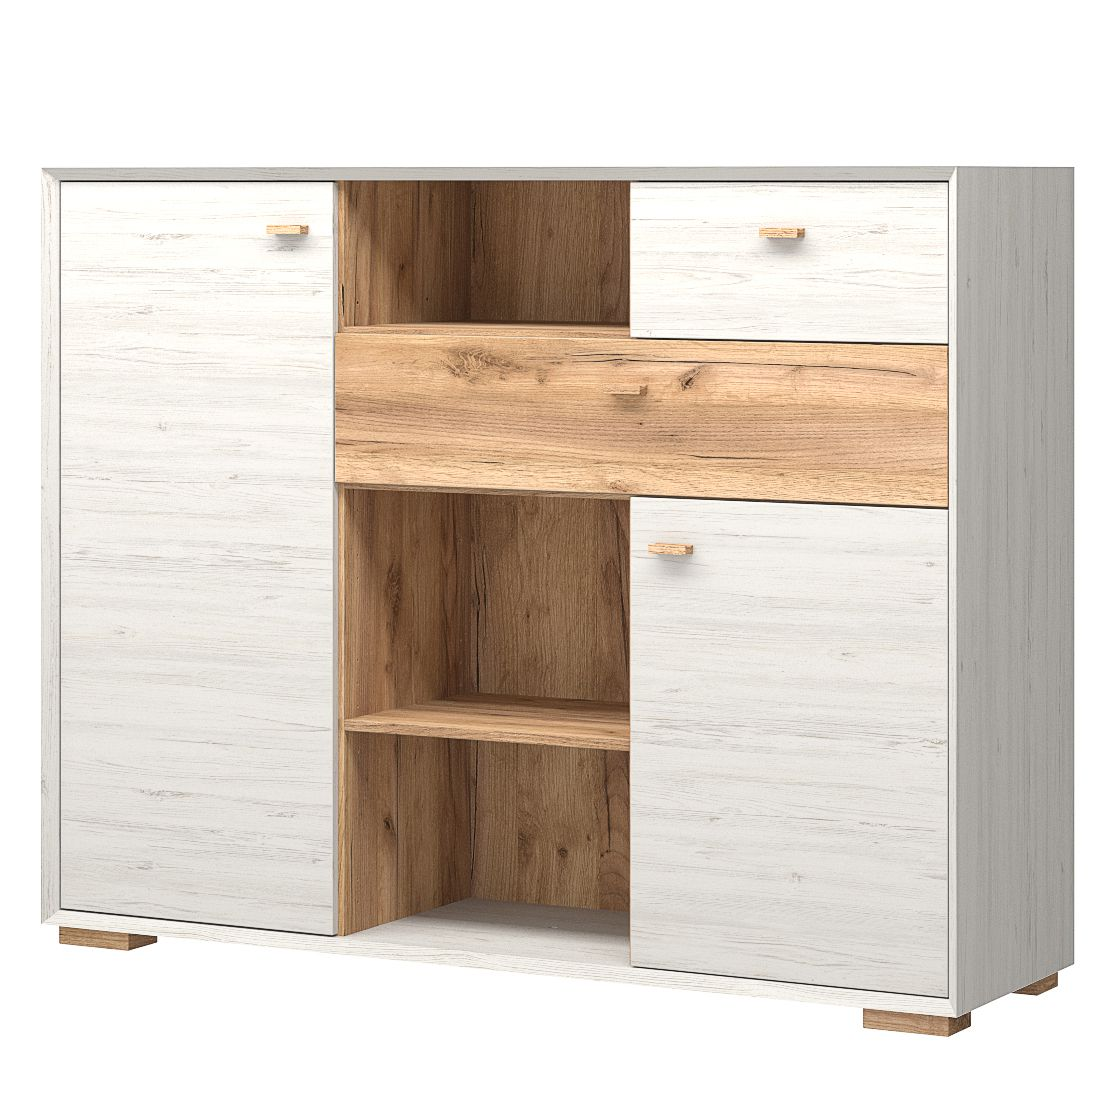 Rabatt Living M Bel Sideboards